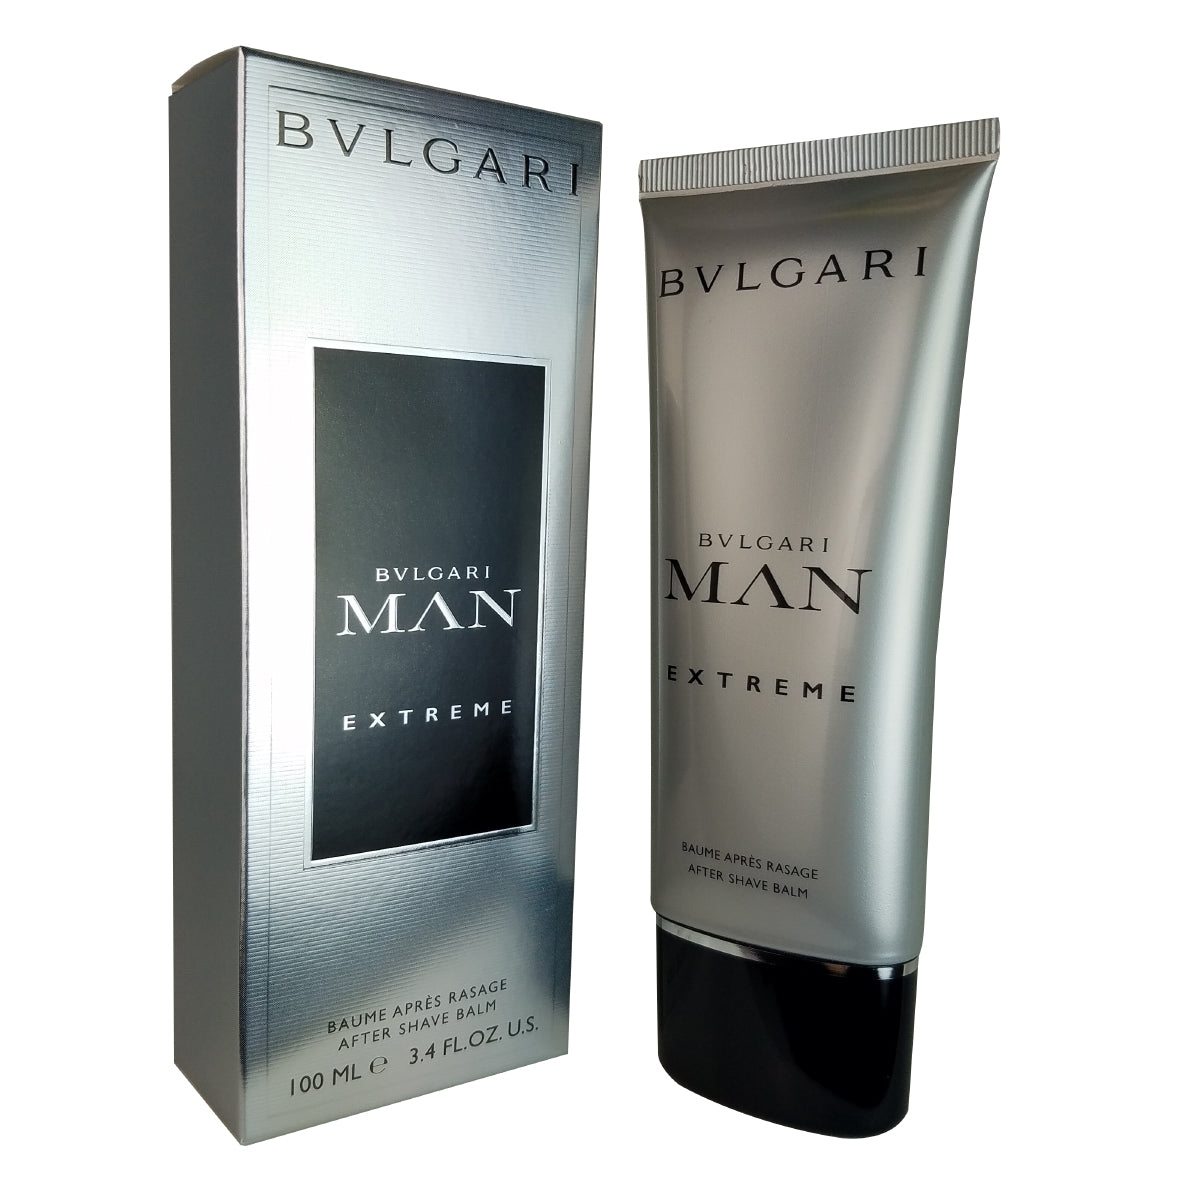 Bvlgari Man Extreme for Men by Bvlgari 3.4 oz After Shave Balm